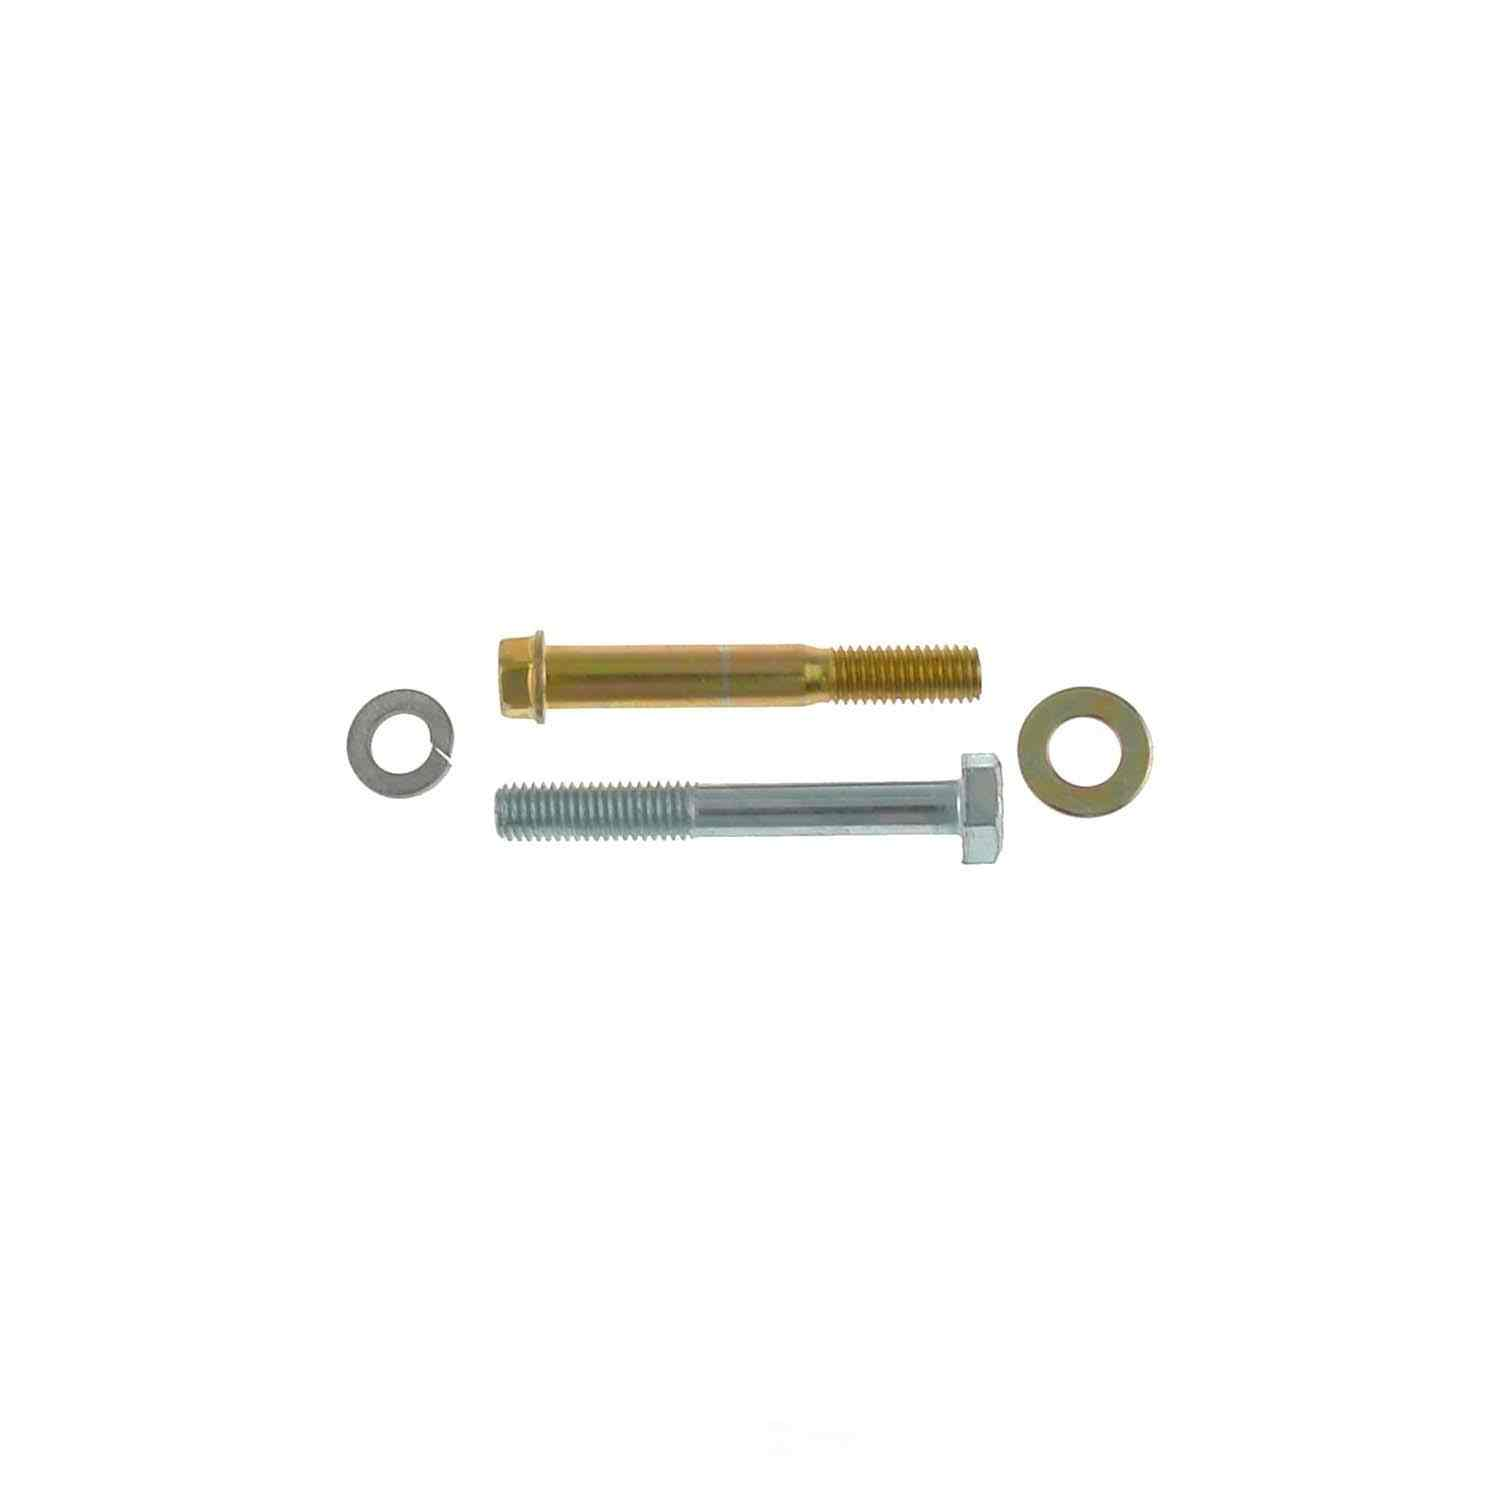 CARLSON QUALITY BRAKE PARTS - Disc Brake Caliper Bolt Kit - CRL 14088